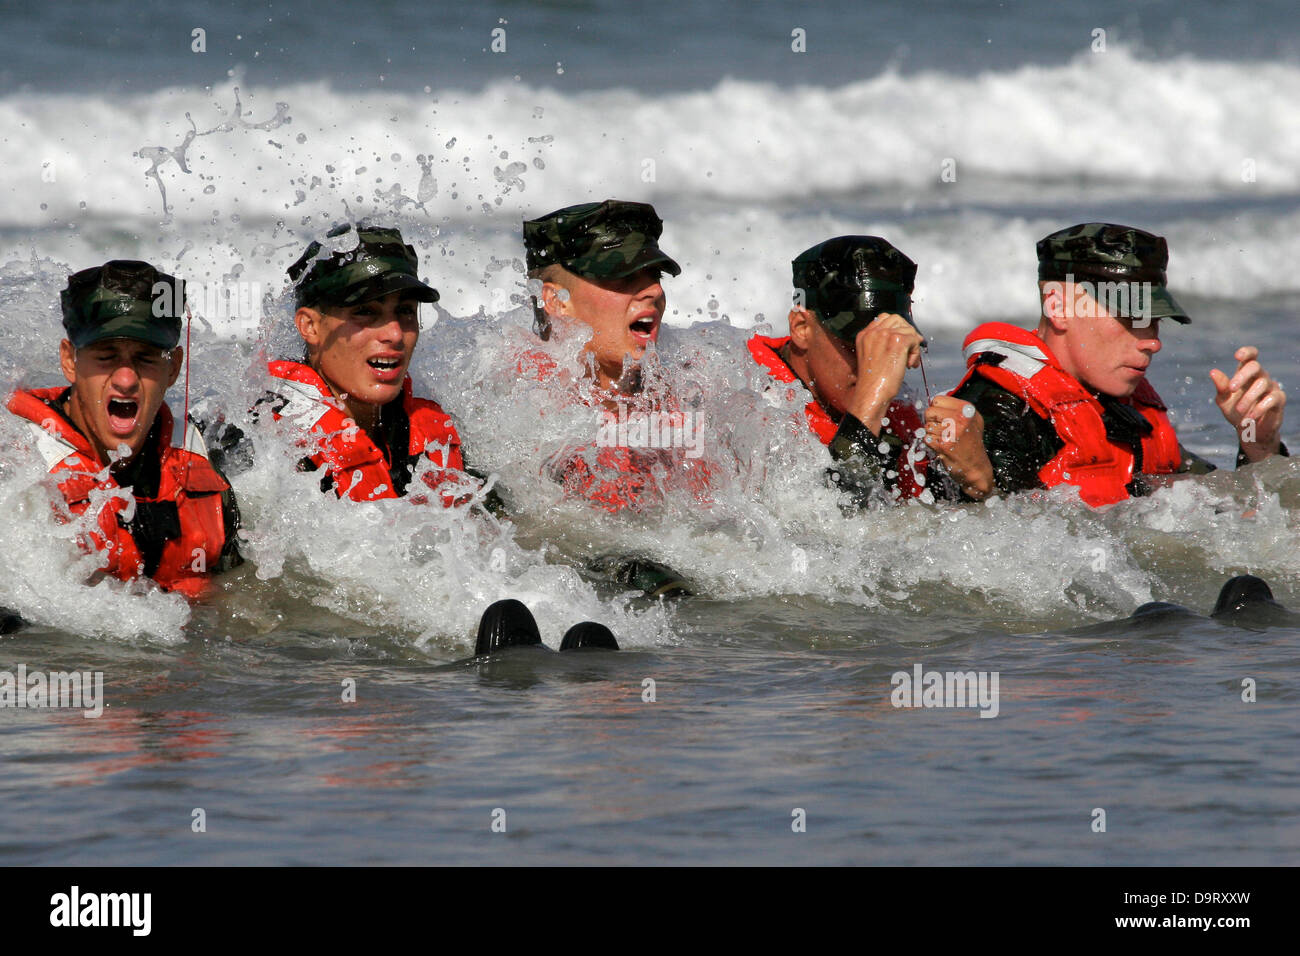 Navy SEAL candidates during surf passage exercises on the first phase of training at Naval Amphibious Base Coronado - Stock Image